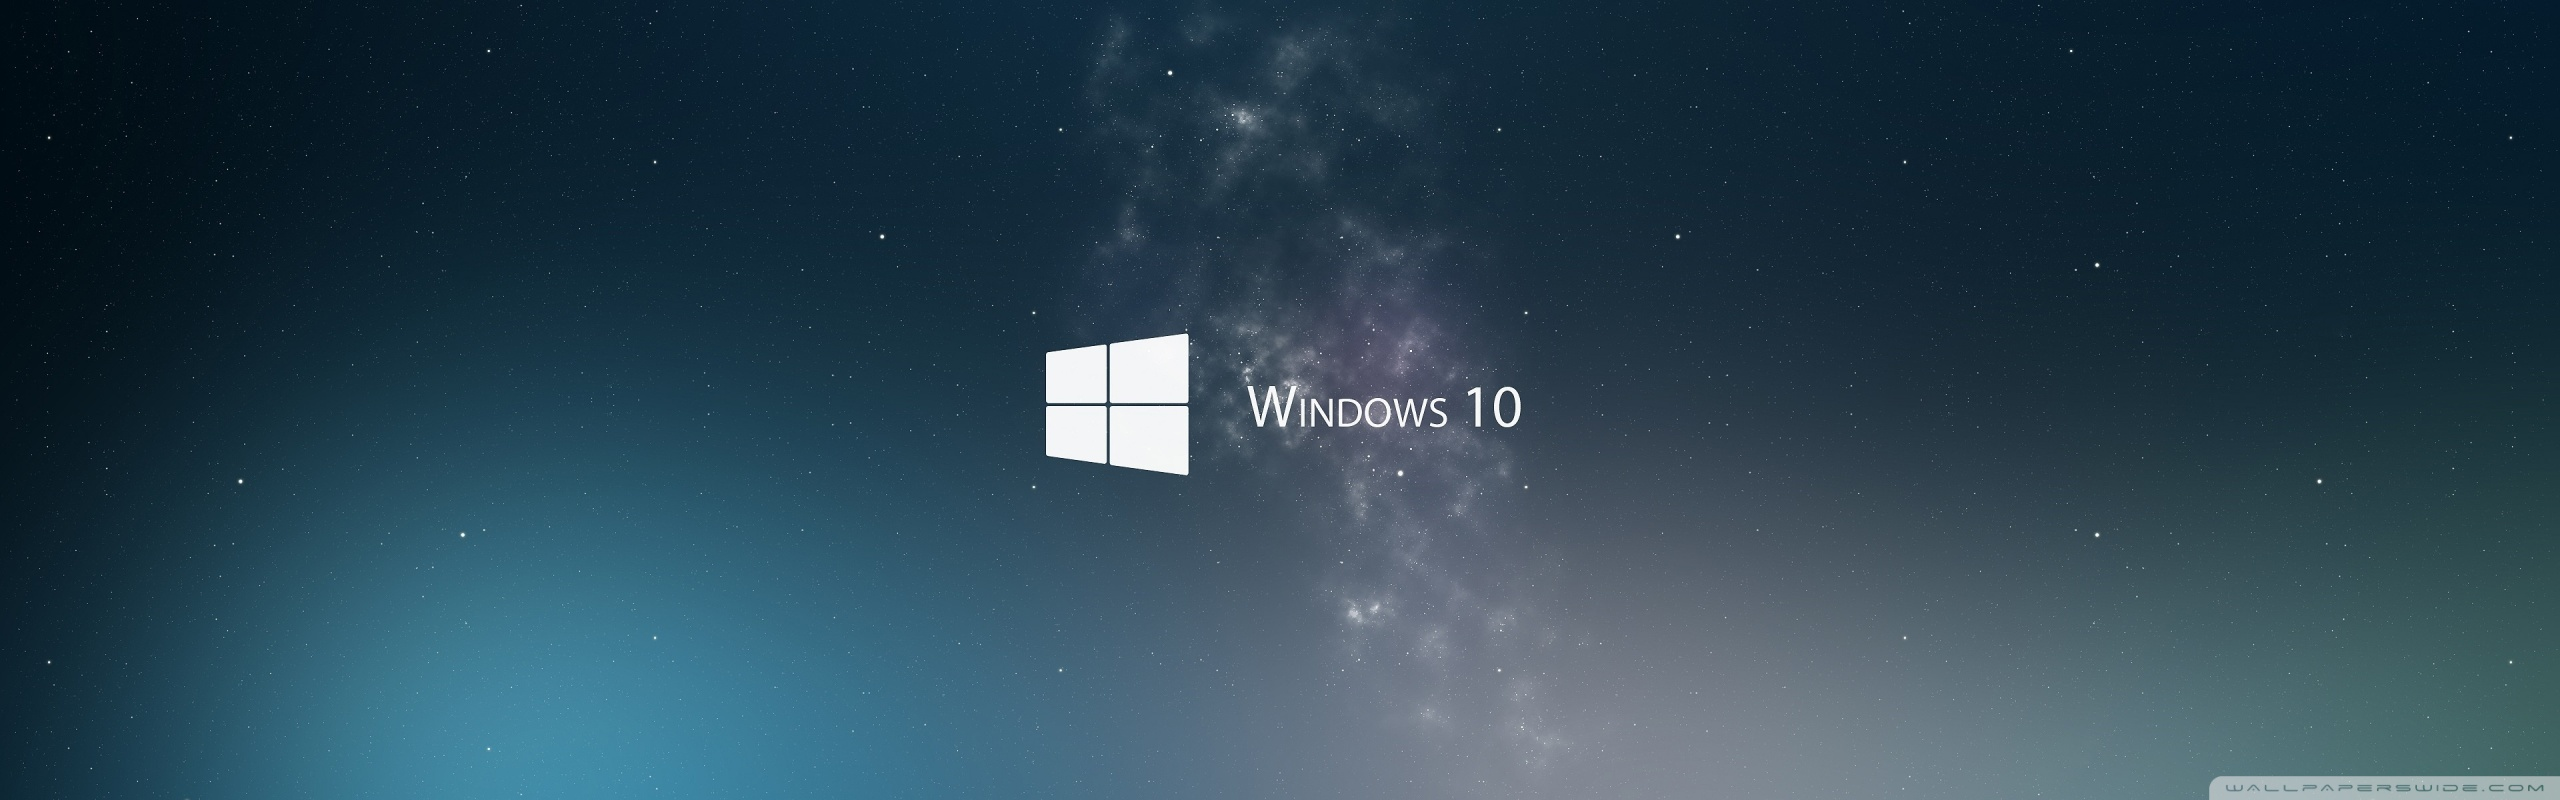 Windows 10 HD desktop wallpaper : Widescreen : Fullscreen : Mobile